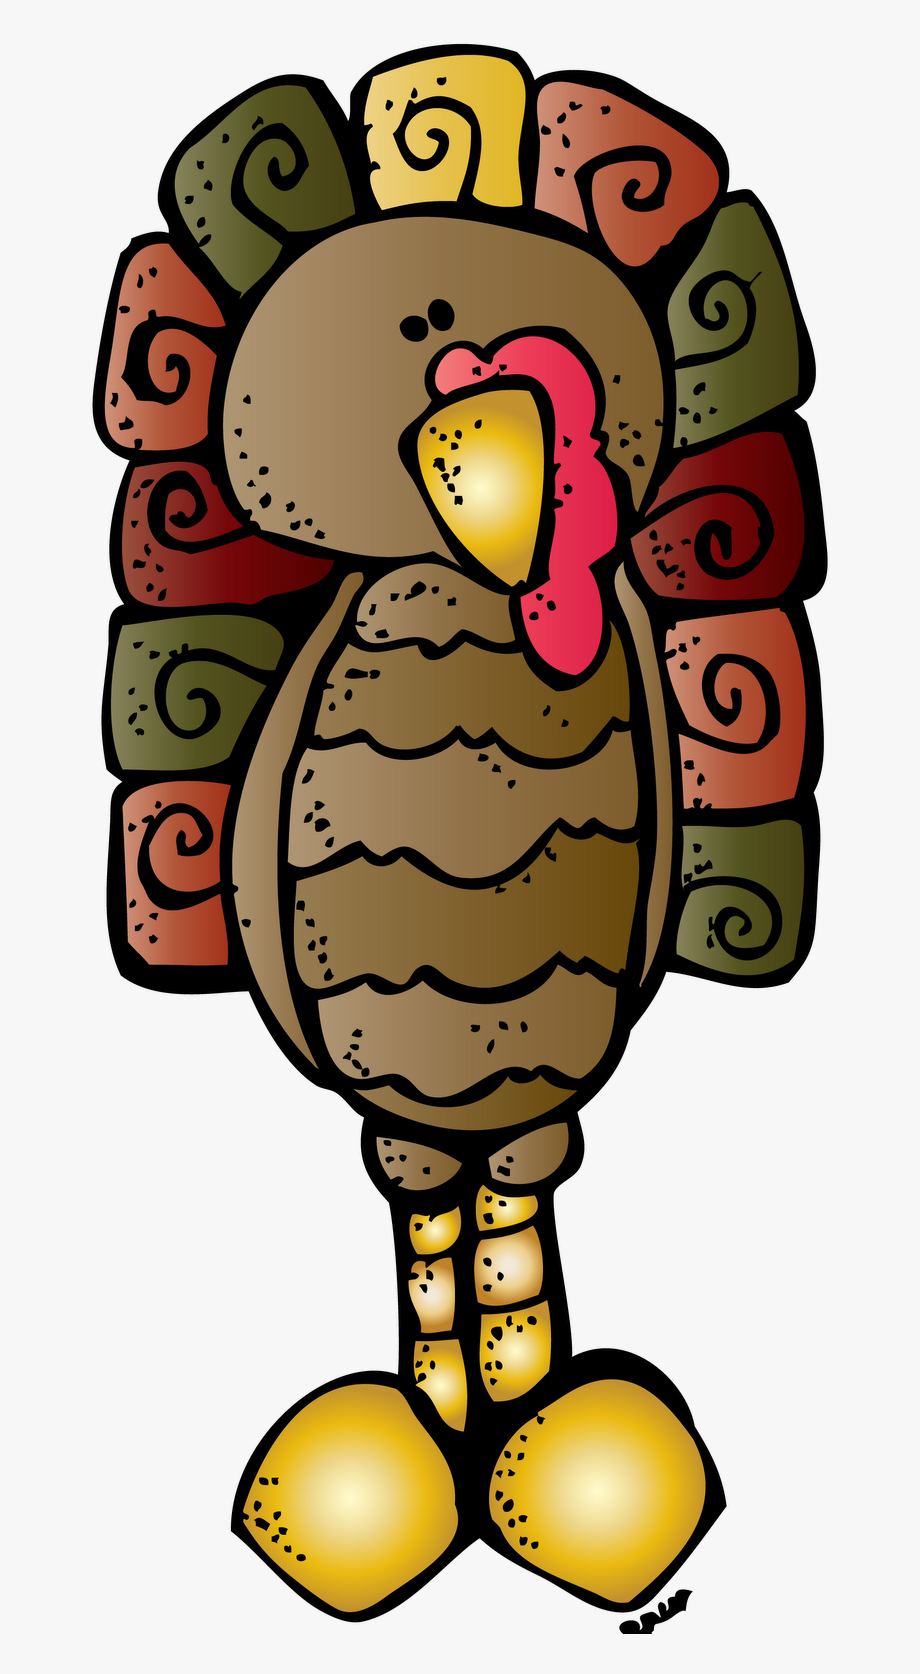 Pilgrims and indians clipart by melon headz download 28 Collection Of Melonheadz November Clipart - Thanksgiving ... download